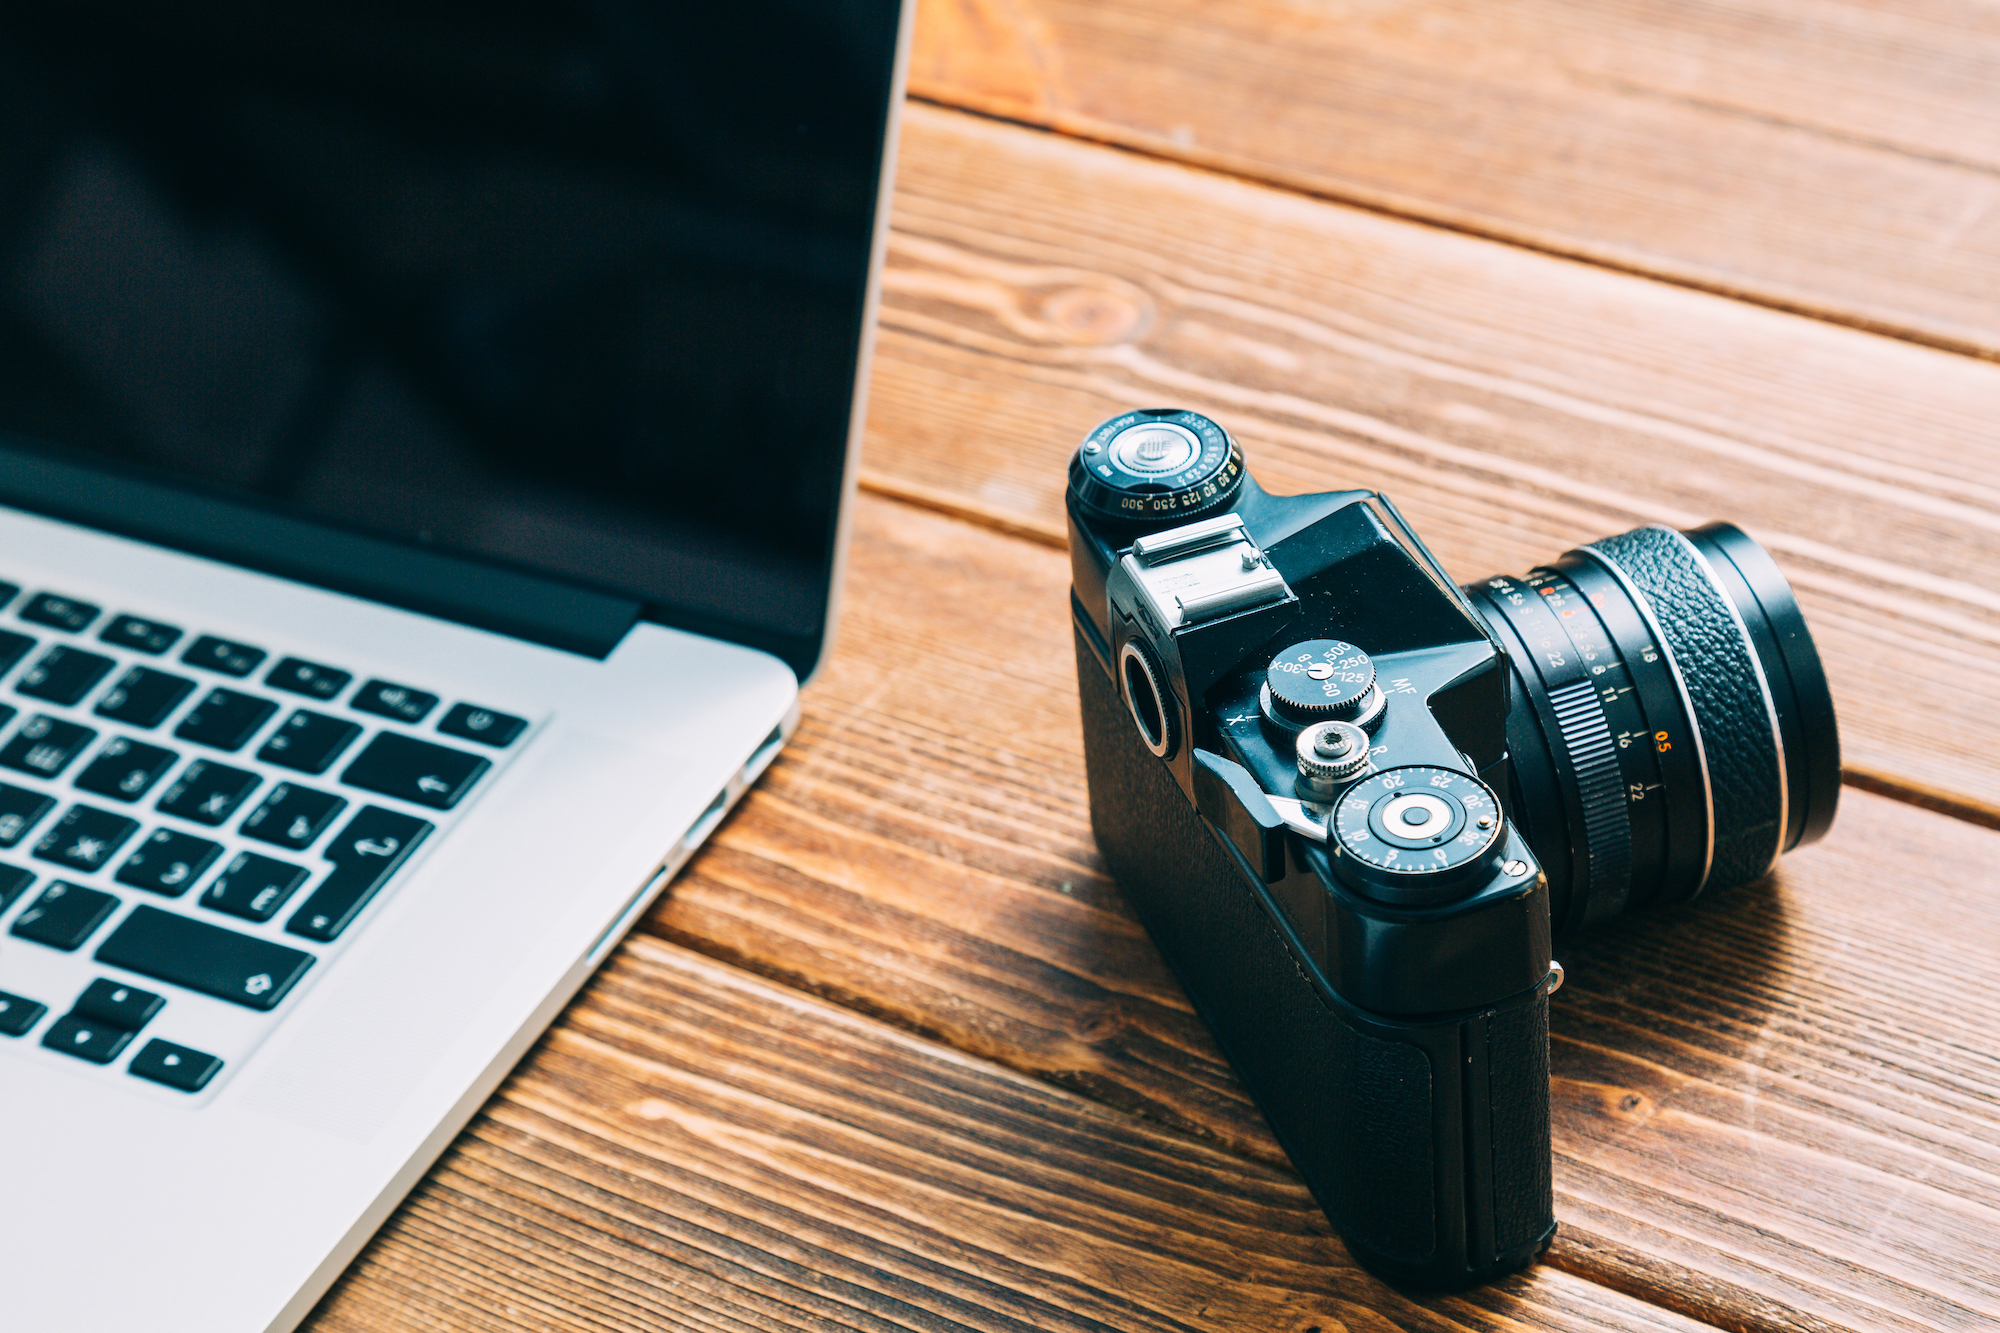 One of the most used features of CloudSpot is the photographer's Storefront. With the ability to set custom prices on products, keep 100% of profits (with no hidden feeds), and choose what to sell, photographers are setting up their Storefronts now more than ever. In 2021, our photographers will have sold more than $350,000 in commission-free store orders! Wow!